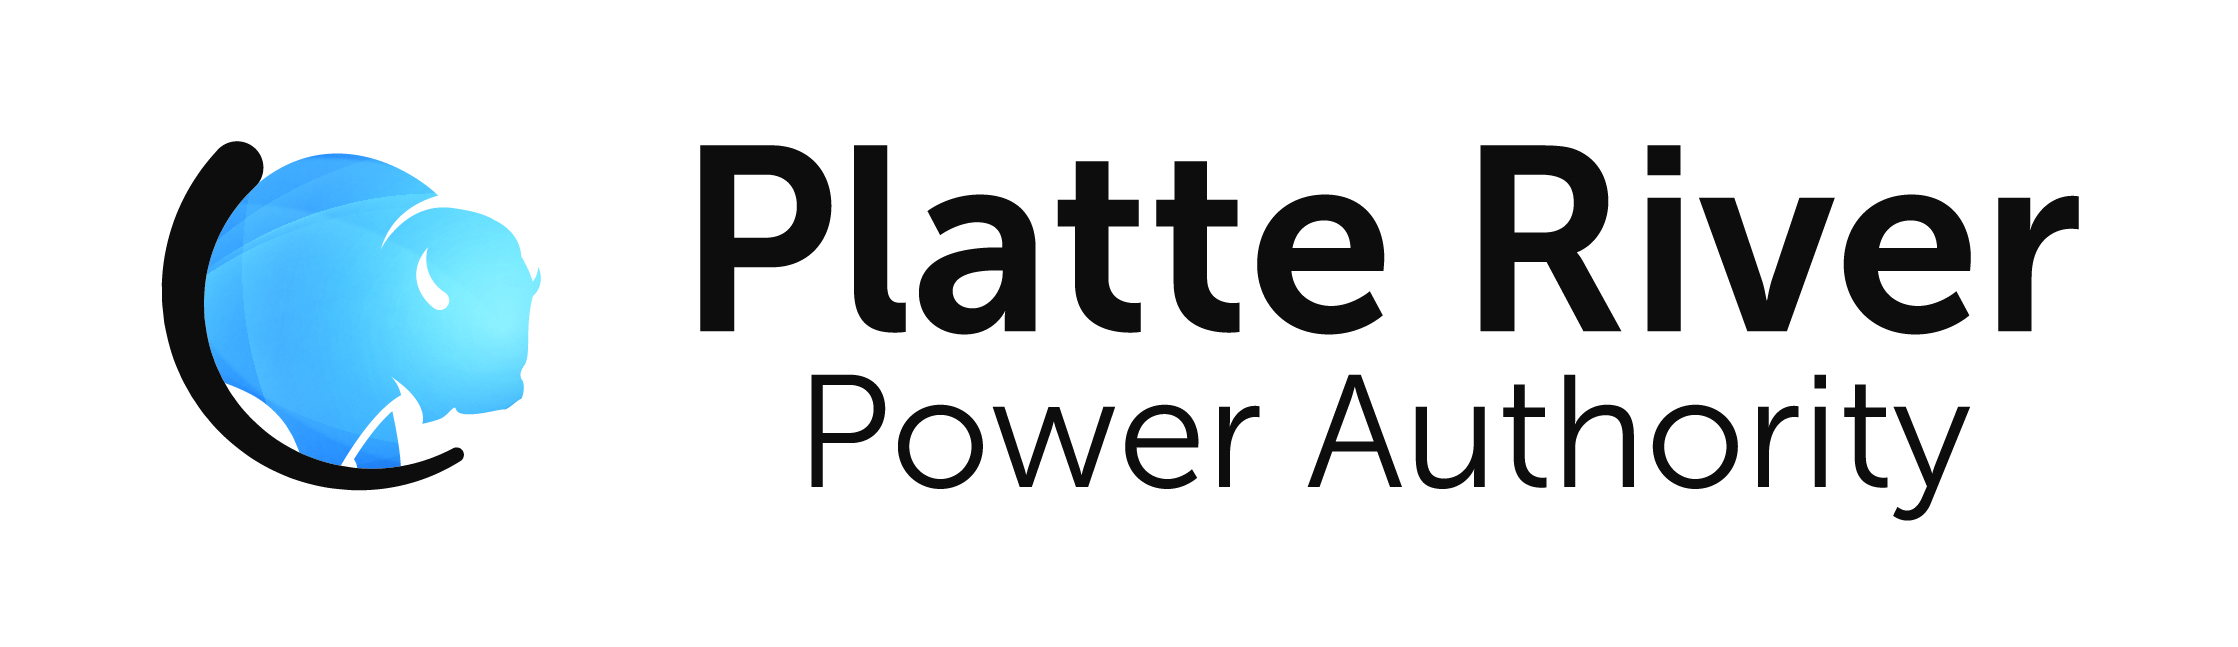 Platte River Power Authority logo